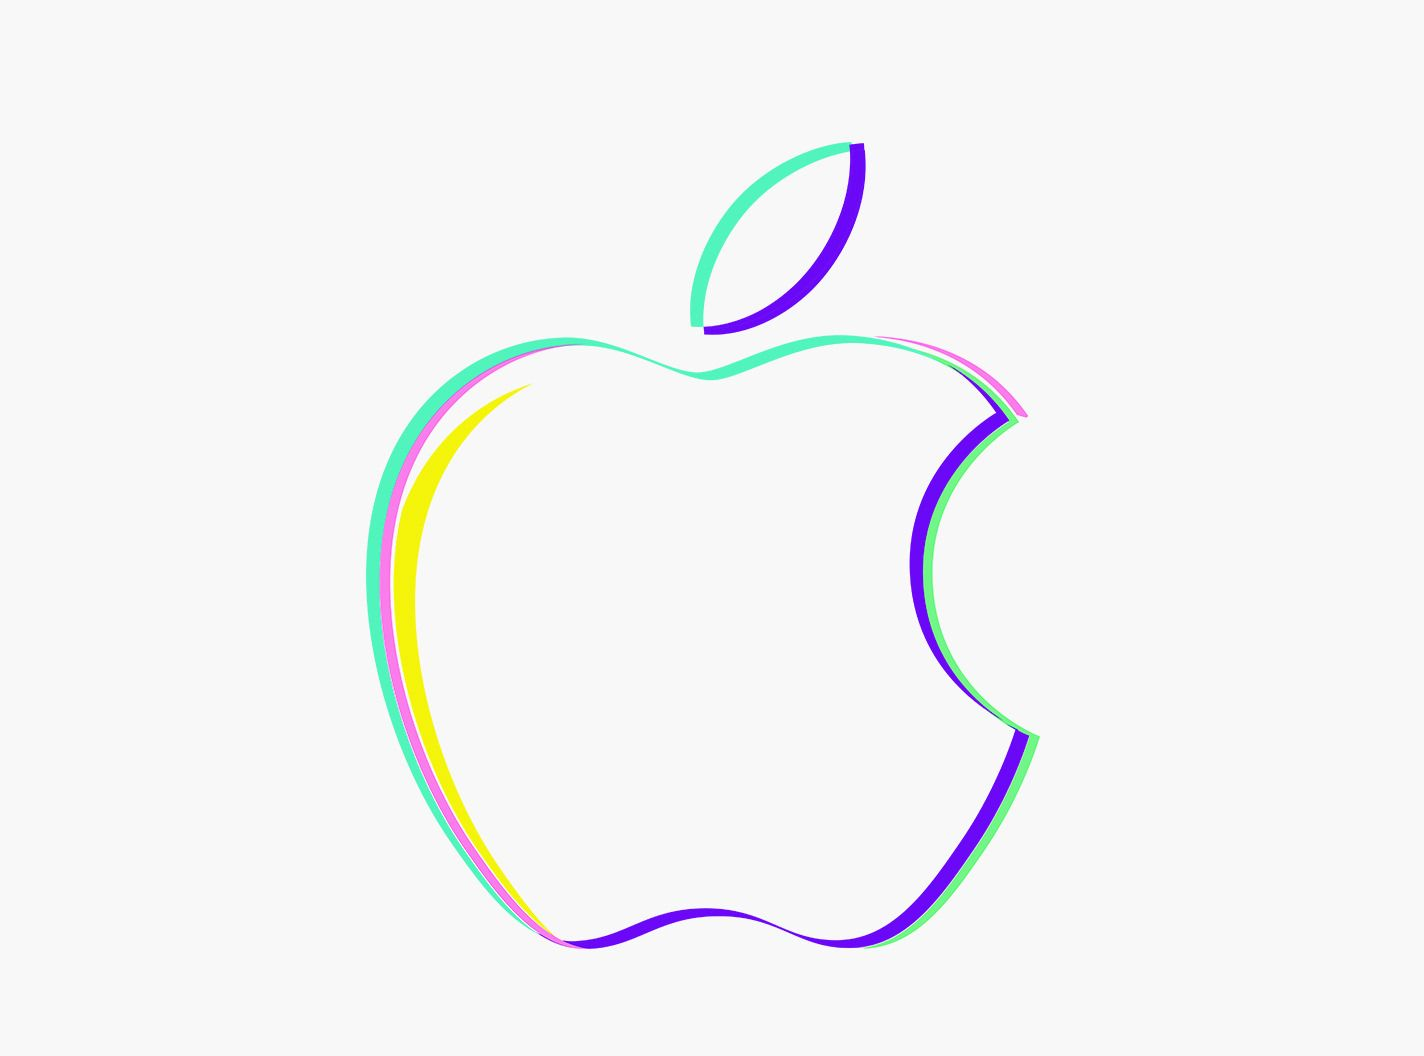 All Of The Apple Logos From The October 30th Event Invites Album On Imgur Apple Logo Design Apple Logo Event Invitation